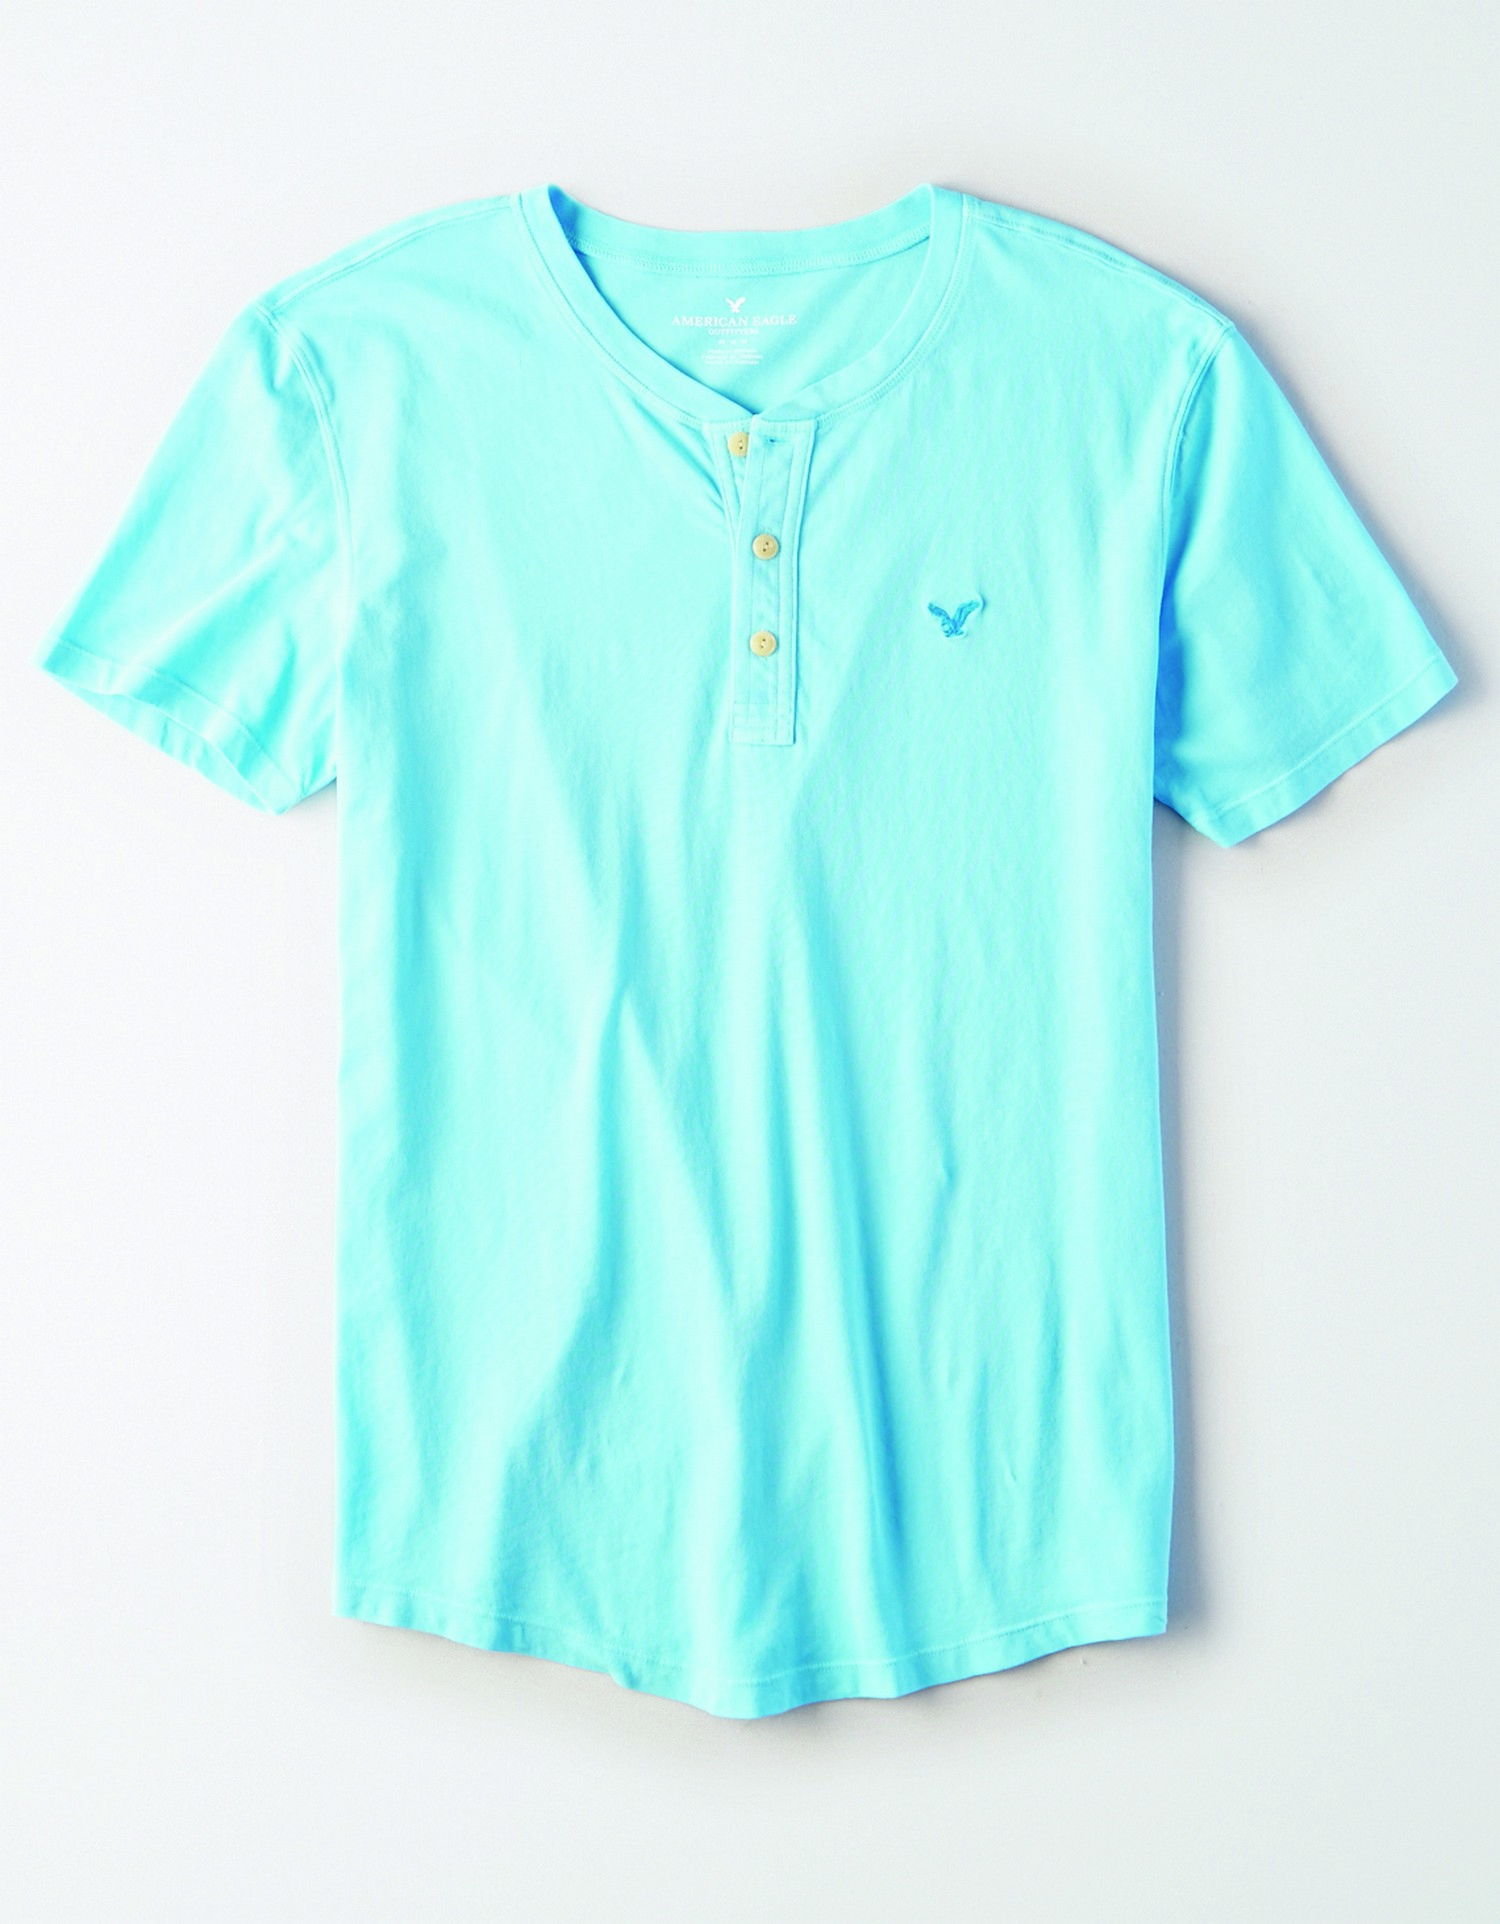 AE - INTL - Apparel - M - SS Henley Tee - Baby Blue - Blue embroidered eagle on left chest - cream buttons BG